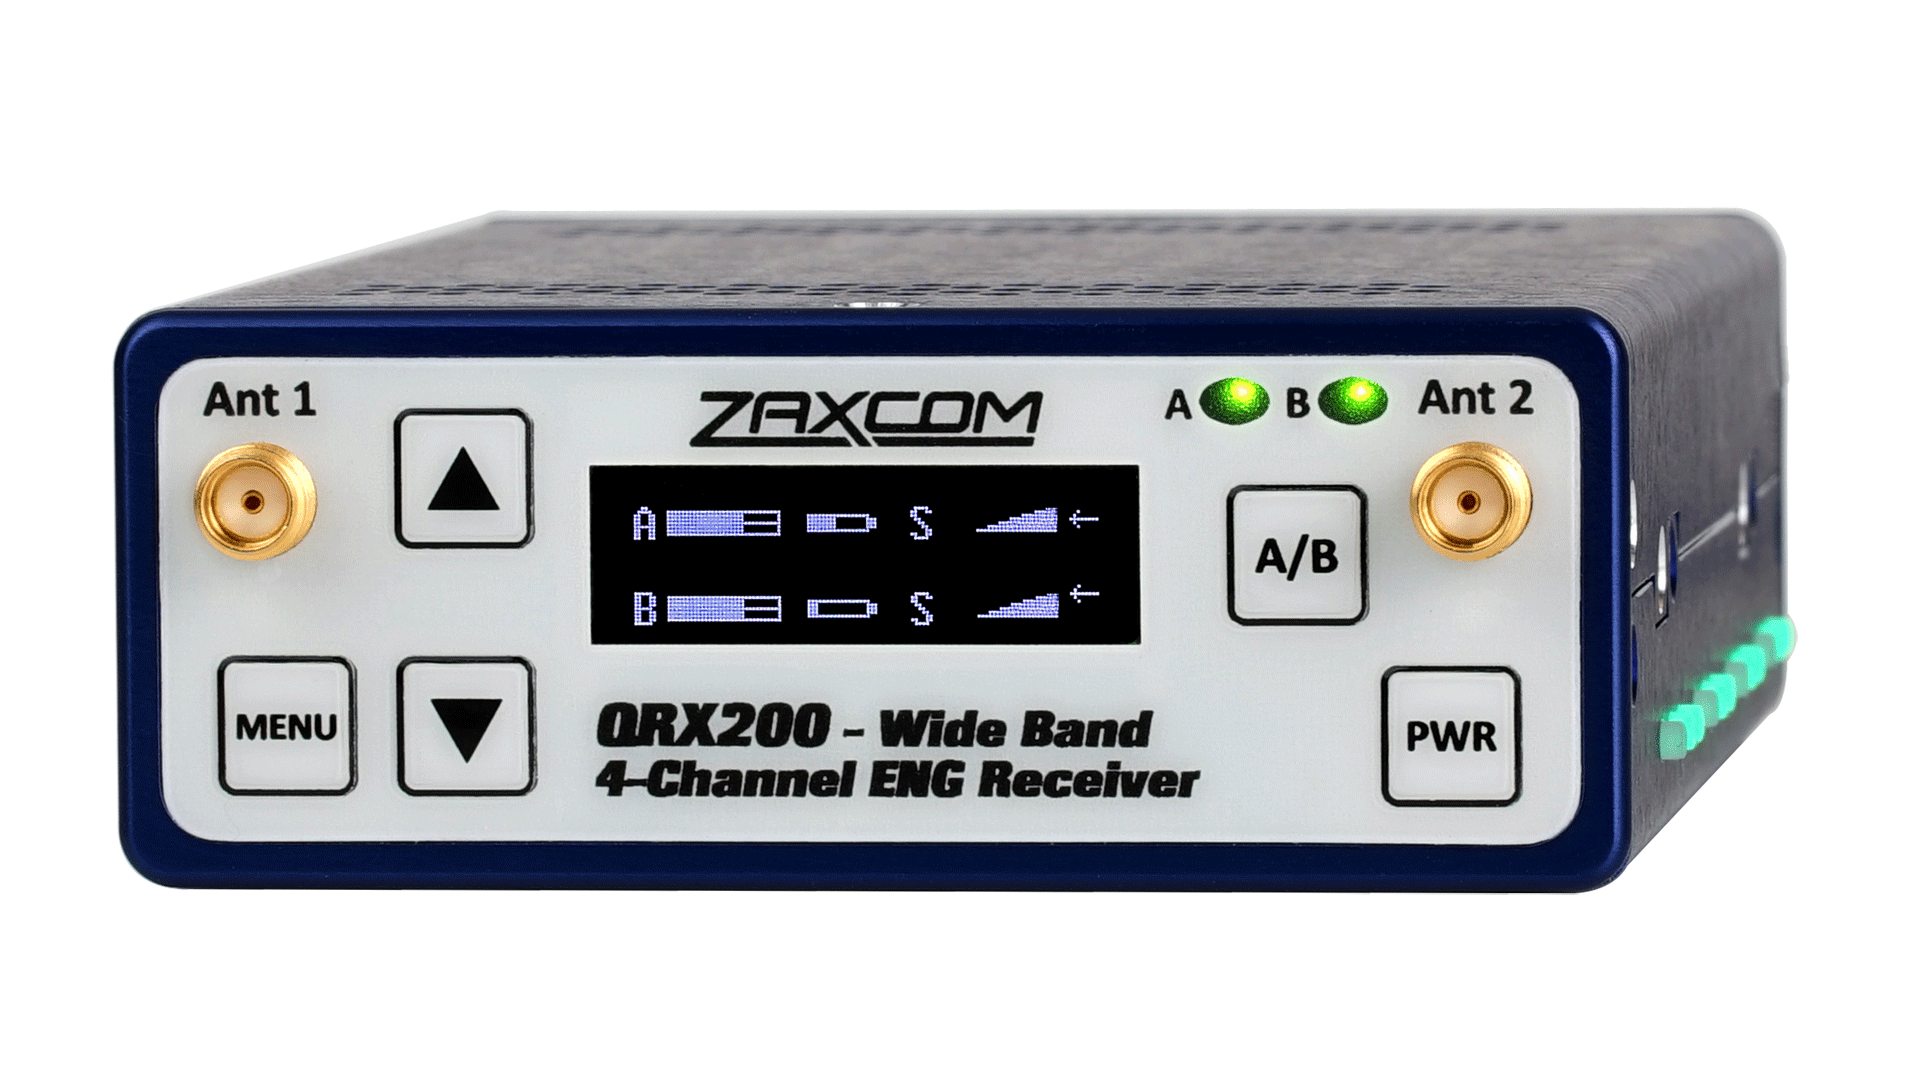 QRX200-1920_1080.png